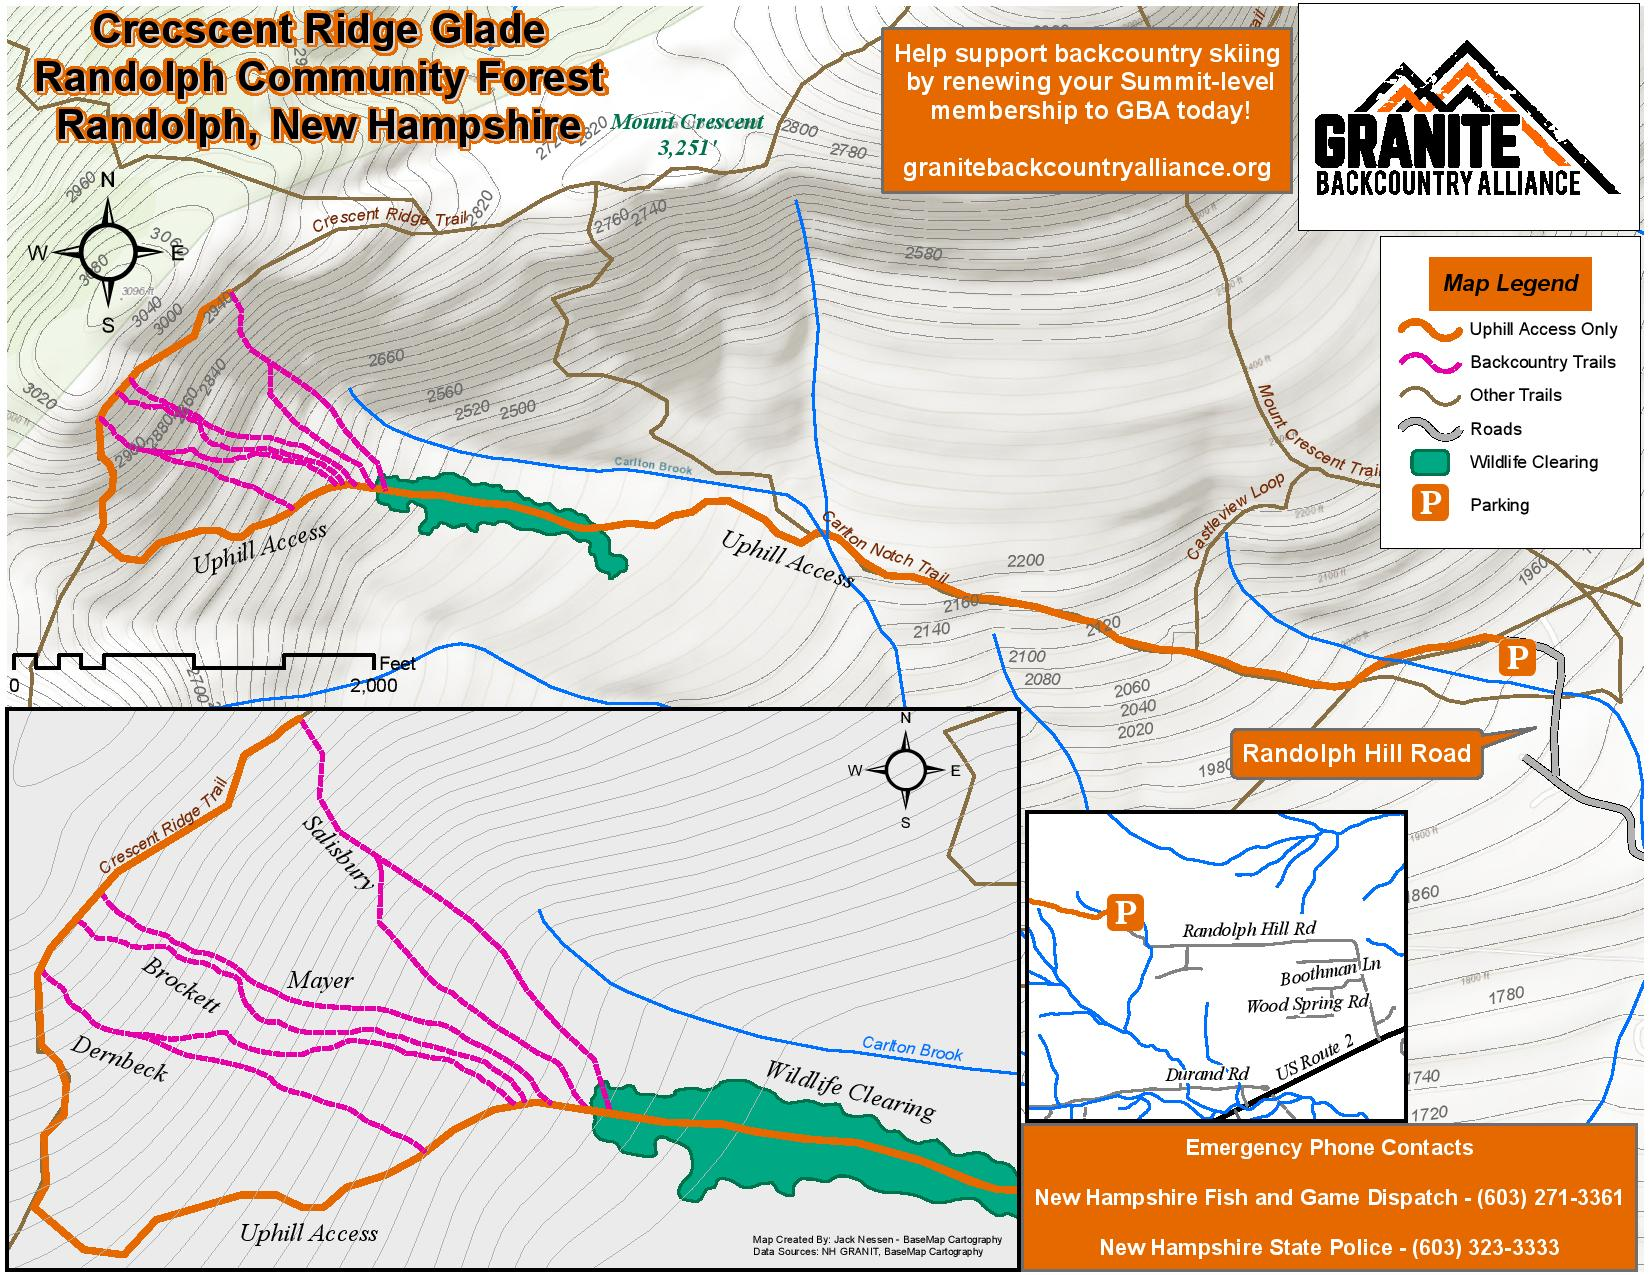 Crescent ridge glade map - granite backcountry alliance